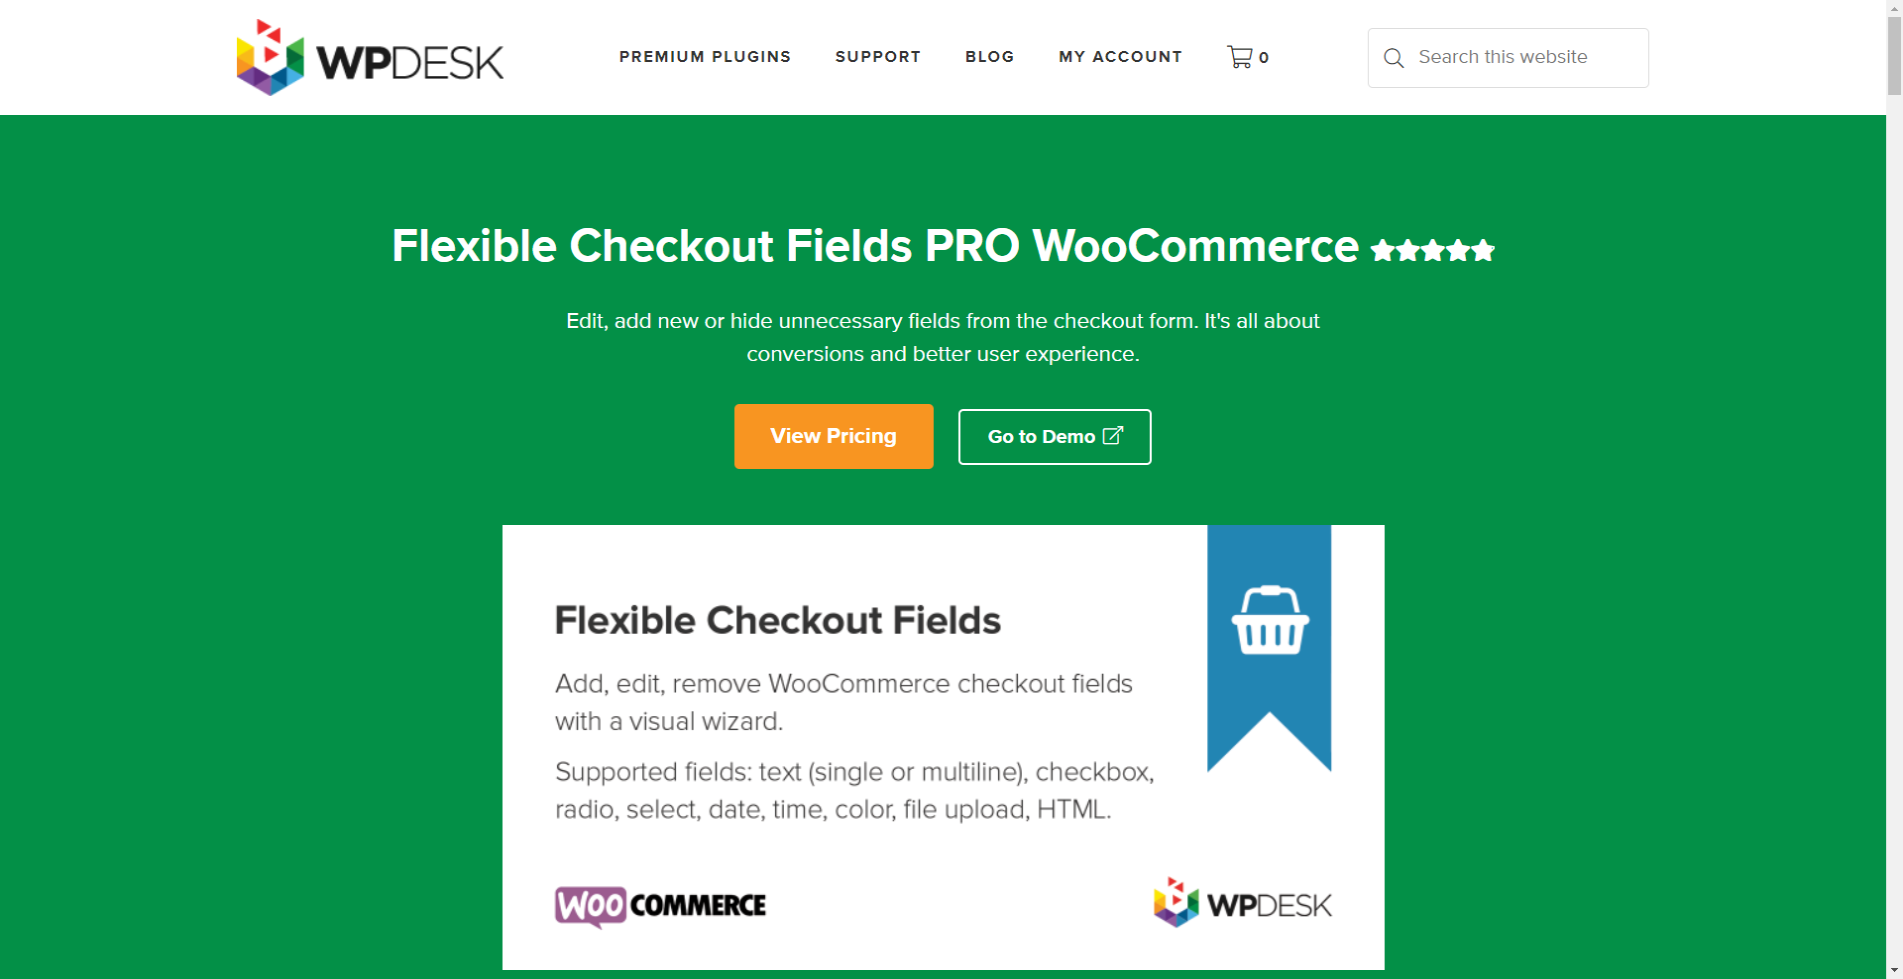 Flexible Checkout Fields Pro WooCommerce plugin page